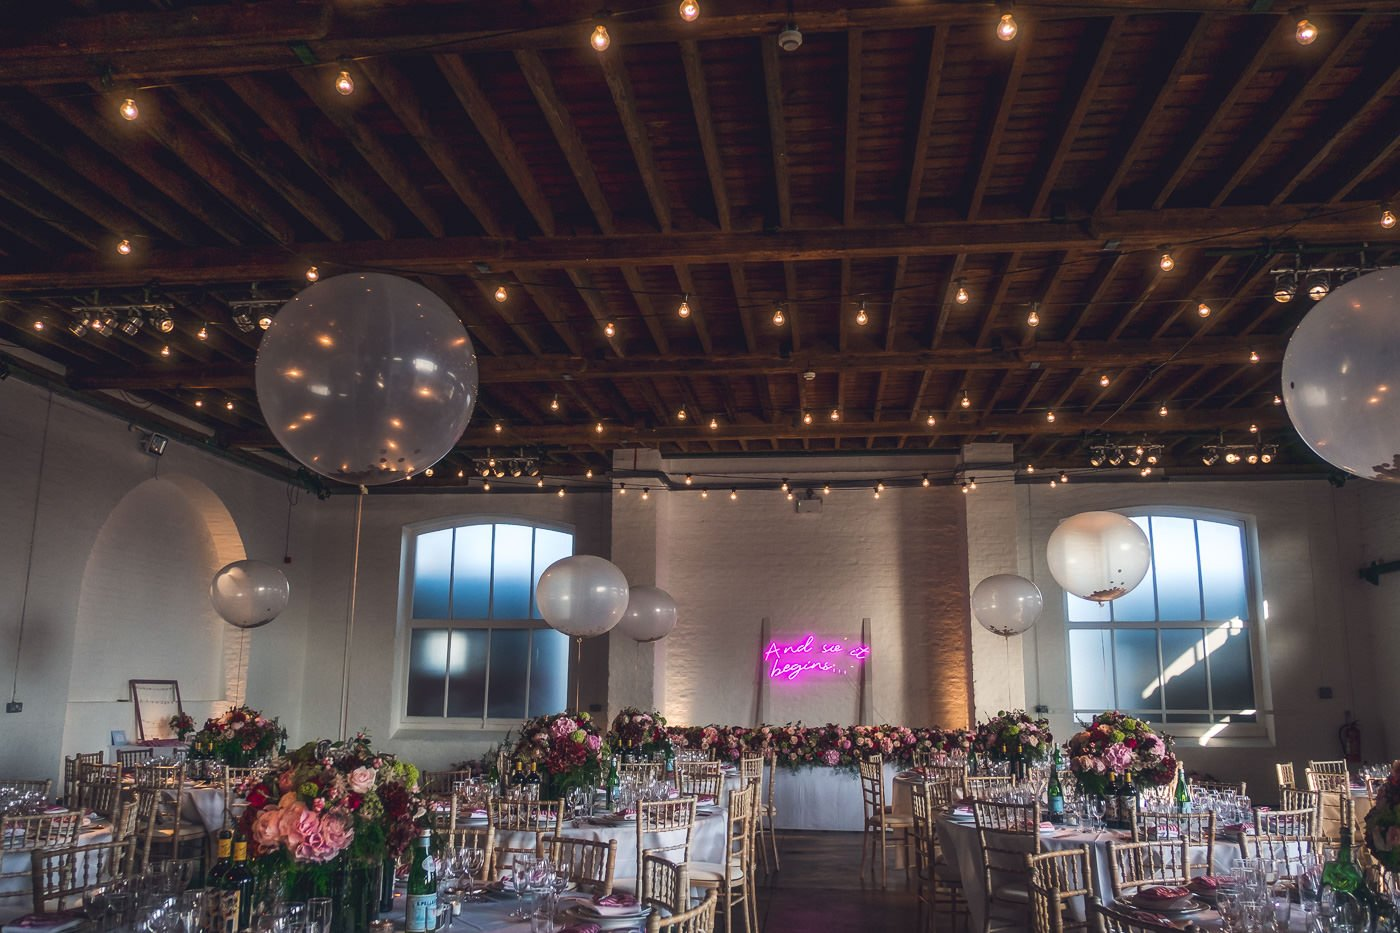 Trinity Buoy Wharf wedding venue set up for dinner with round tables and giant balloons decorating the warehouse